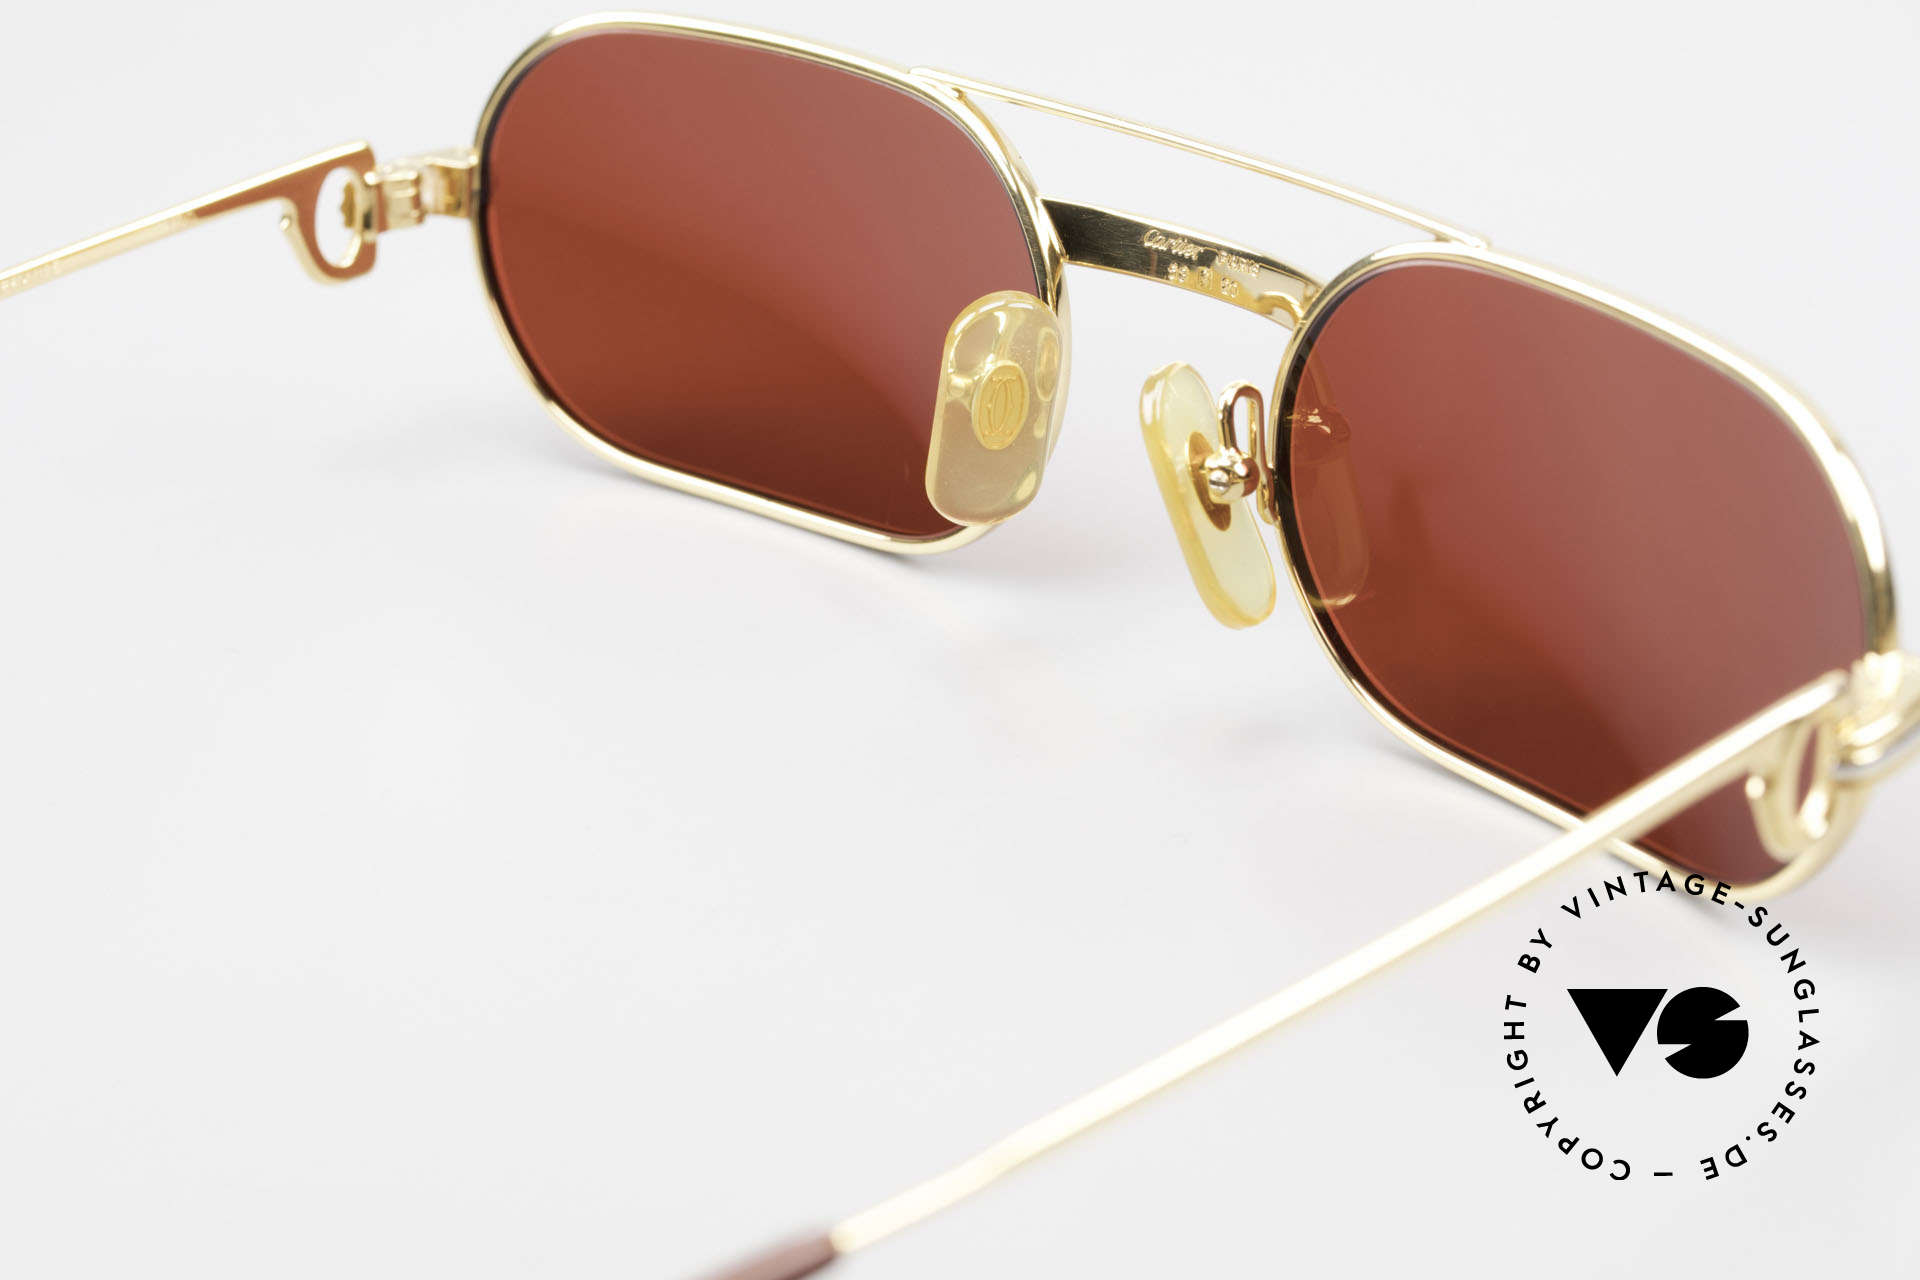 Cartier MUST LC - S 3D Red Luxury Sunglasses, 2nd hand model, but in mint condition + CHANEL case, Made for Men and Women